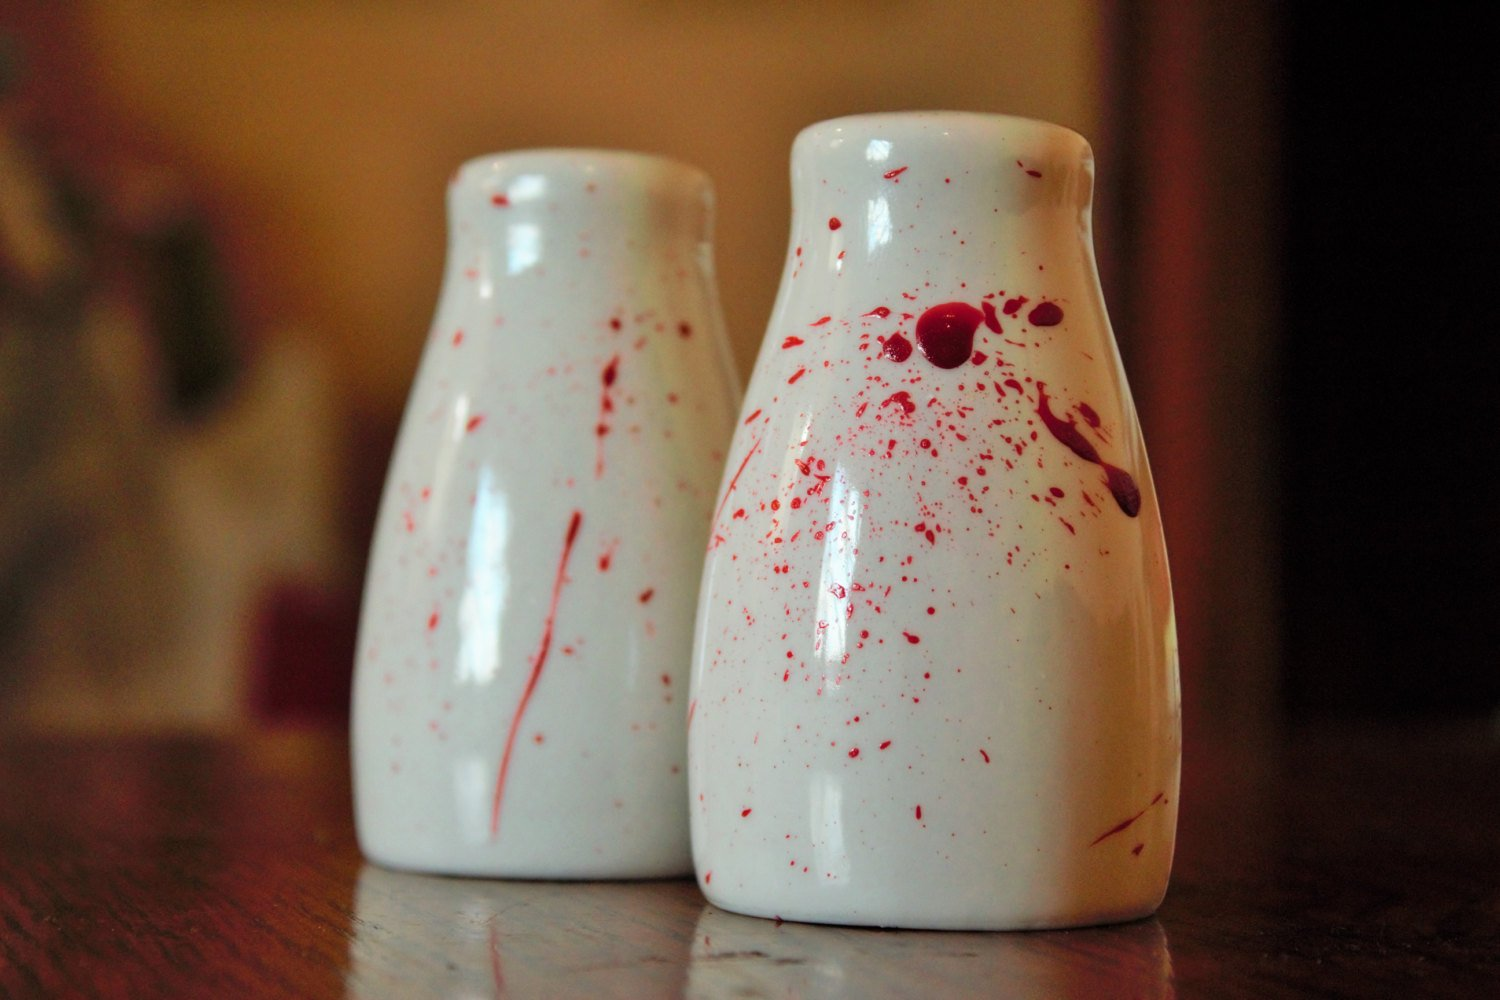 Blood Splatter Salt and Pepper Shaker Set - ByCandlelight27